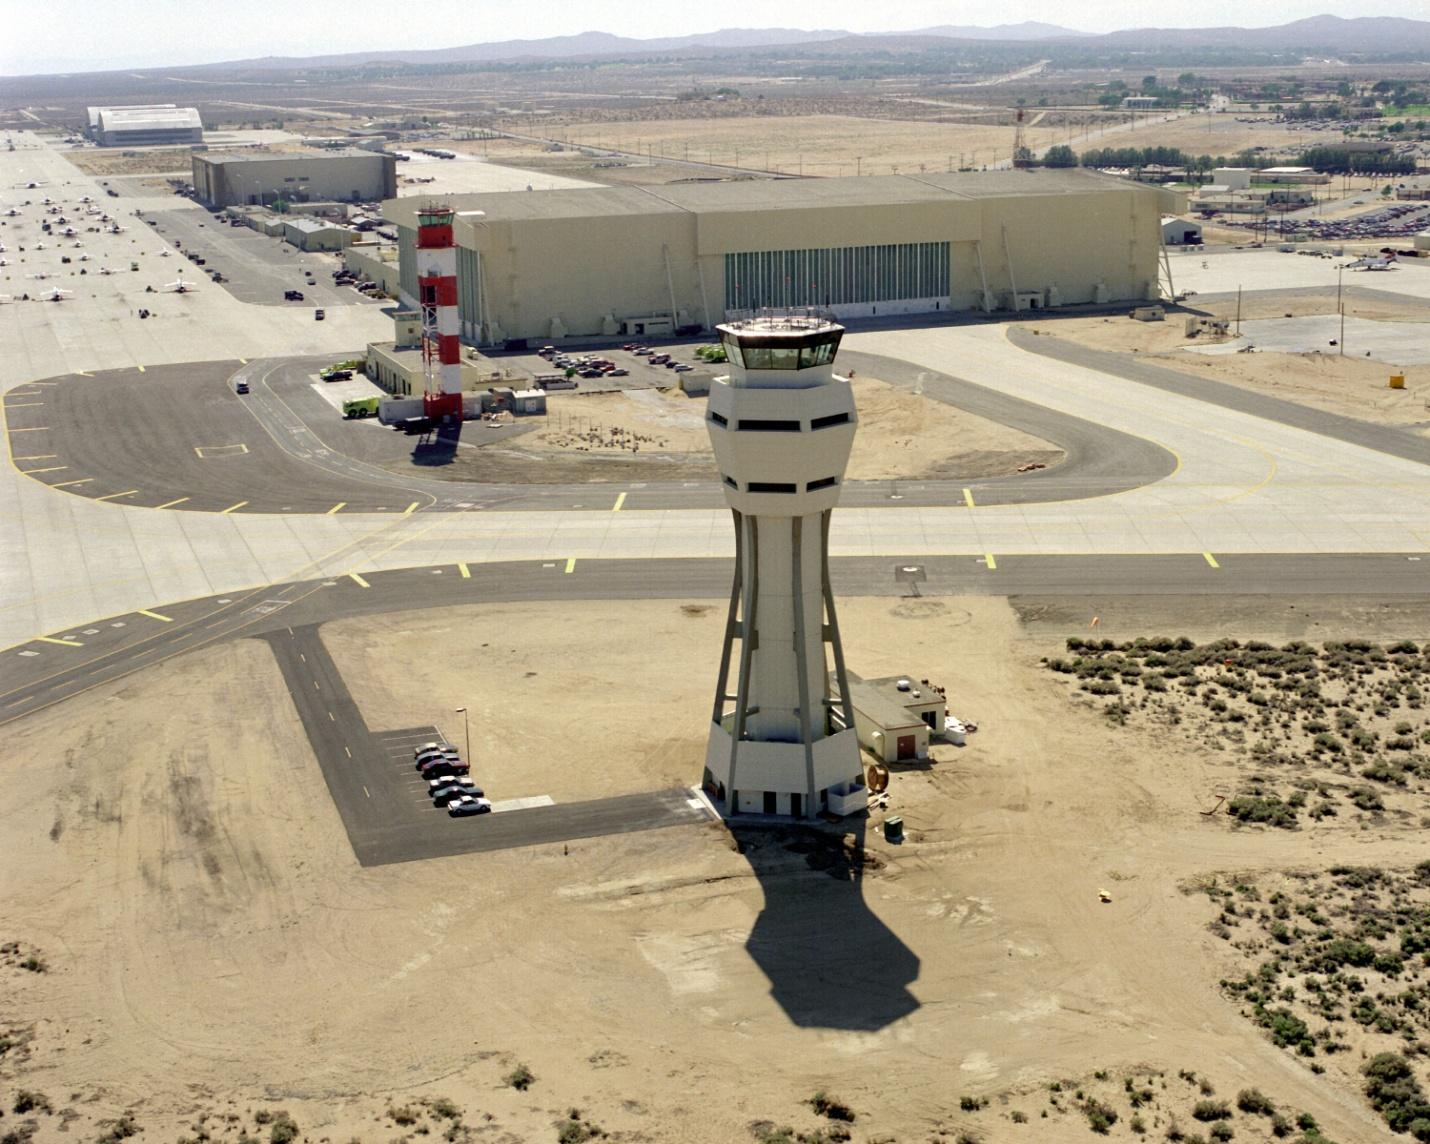 C:UsersWorkDesktopArmy BasesAirforceEdwards Air Force Base in Edwards, CAEdwards_AFB_control_tower.jpg